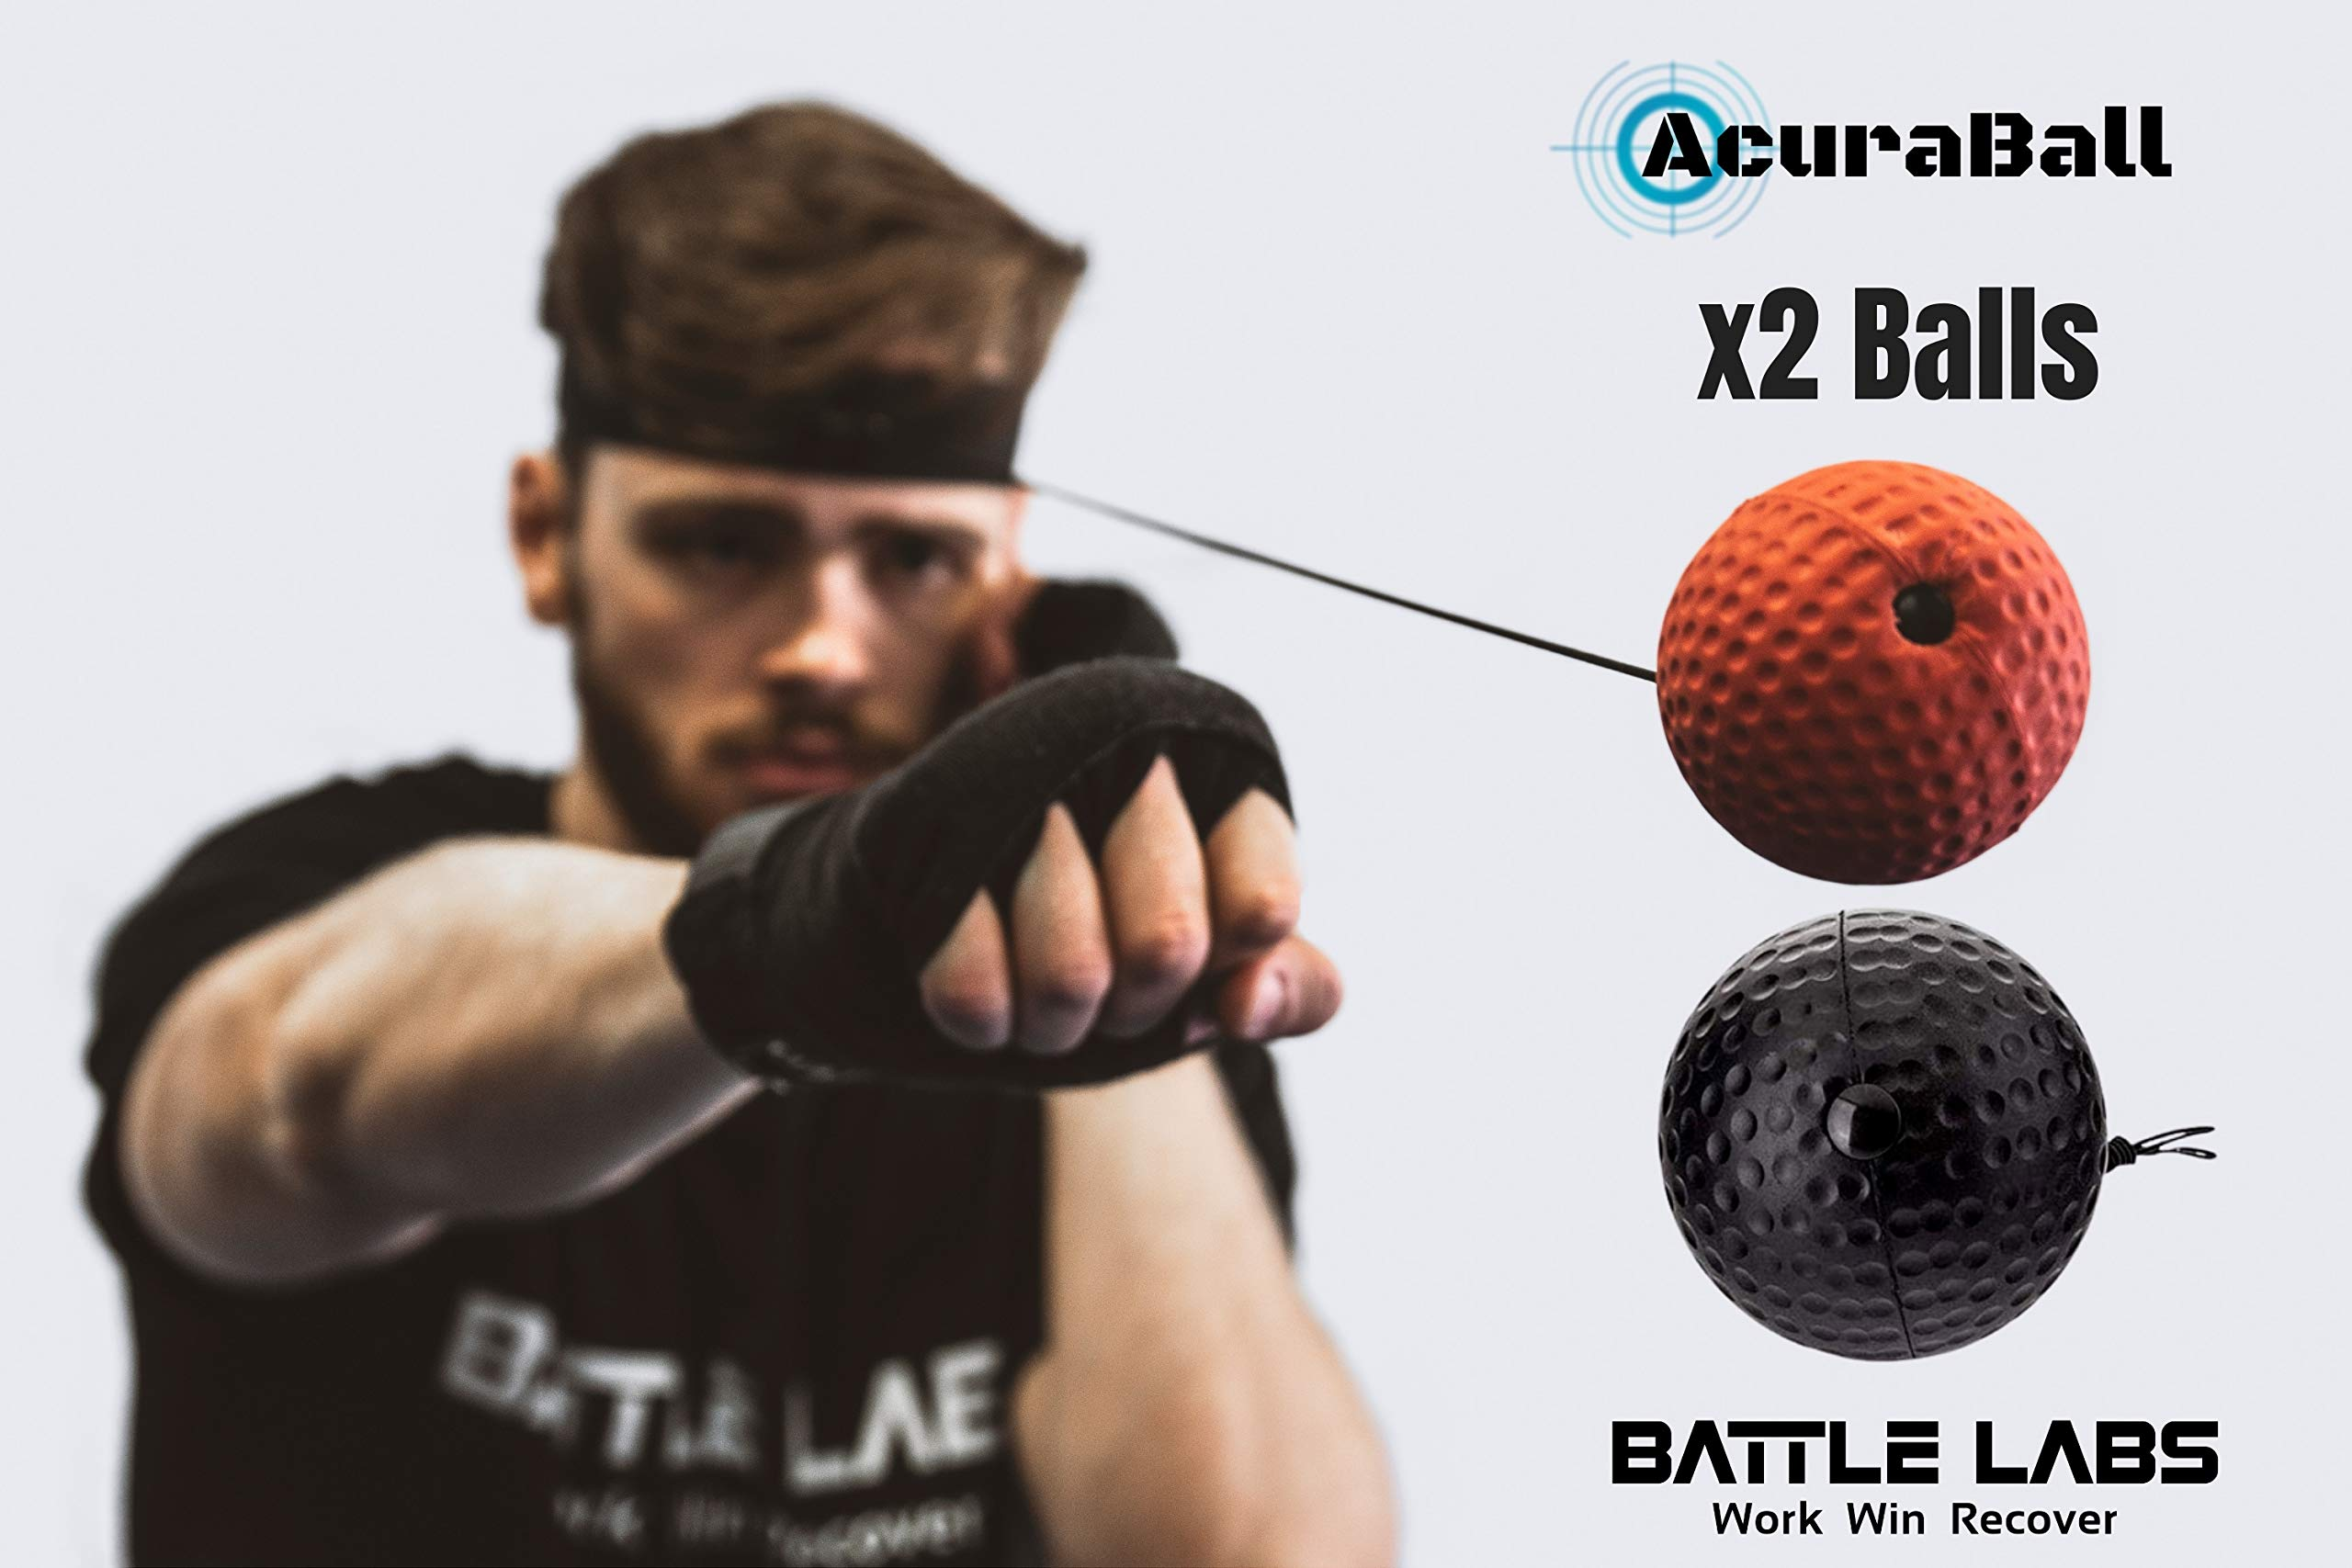 AcuraBall - Boxing Reflex Ball For Boxing, MMA and Muay Thai Hand-eye Coordination Training. The Boxing Ball Improves Your Fight Fitness, Reflexes, Reaction Times and Hand Speed/Accuracy